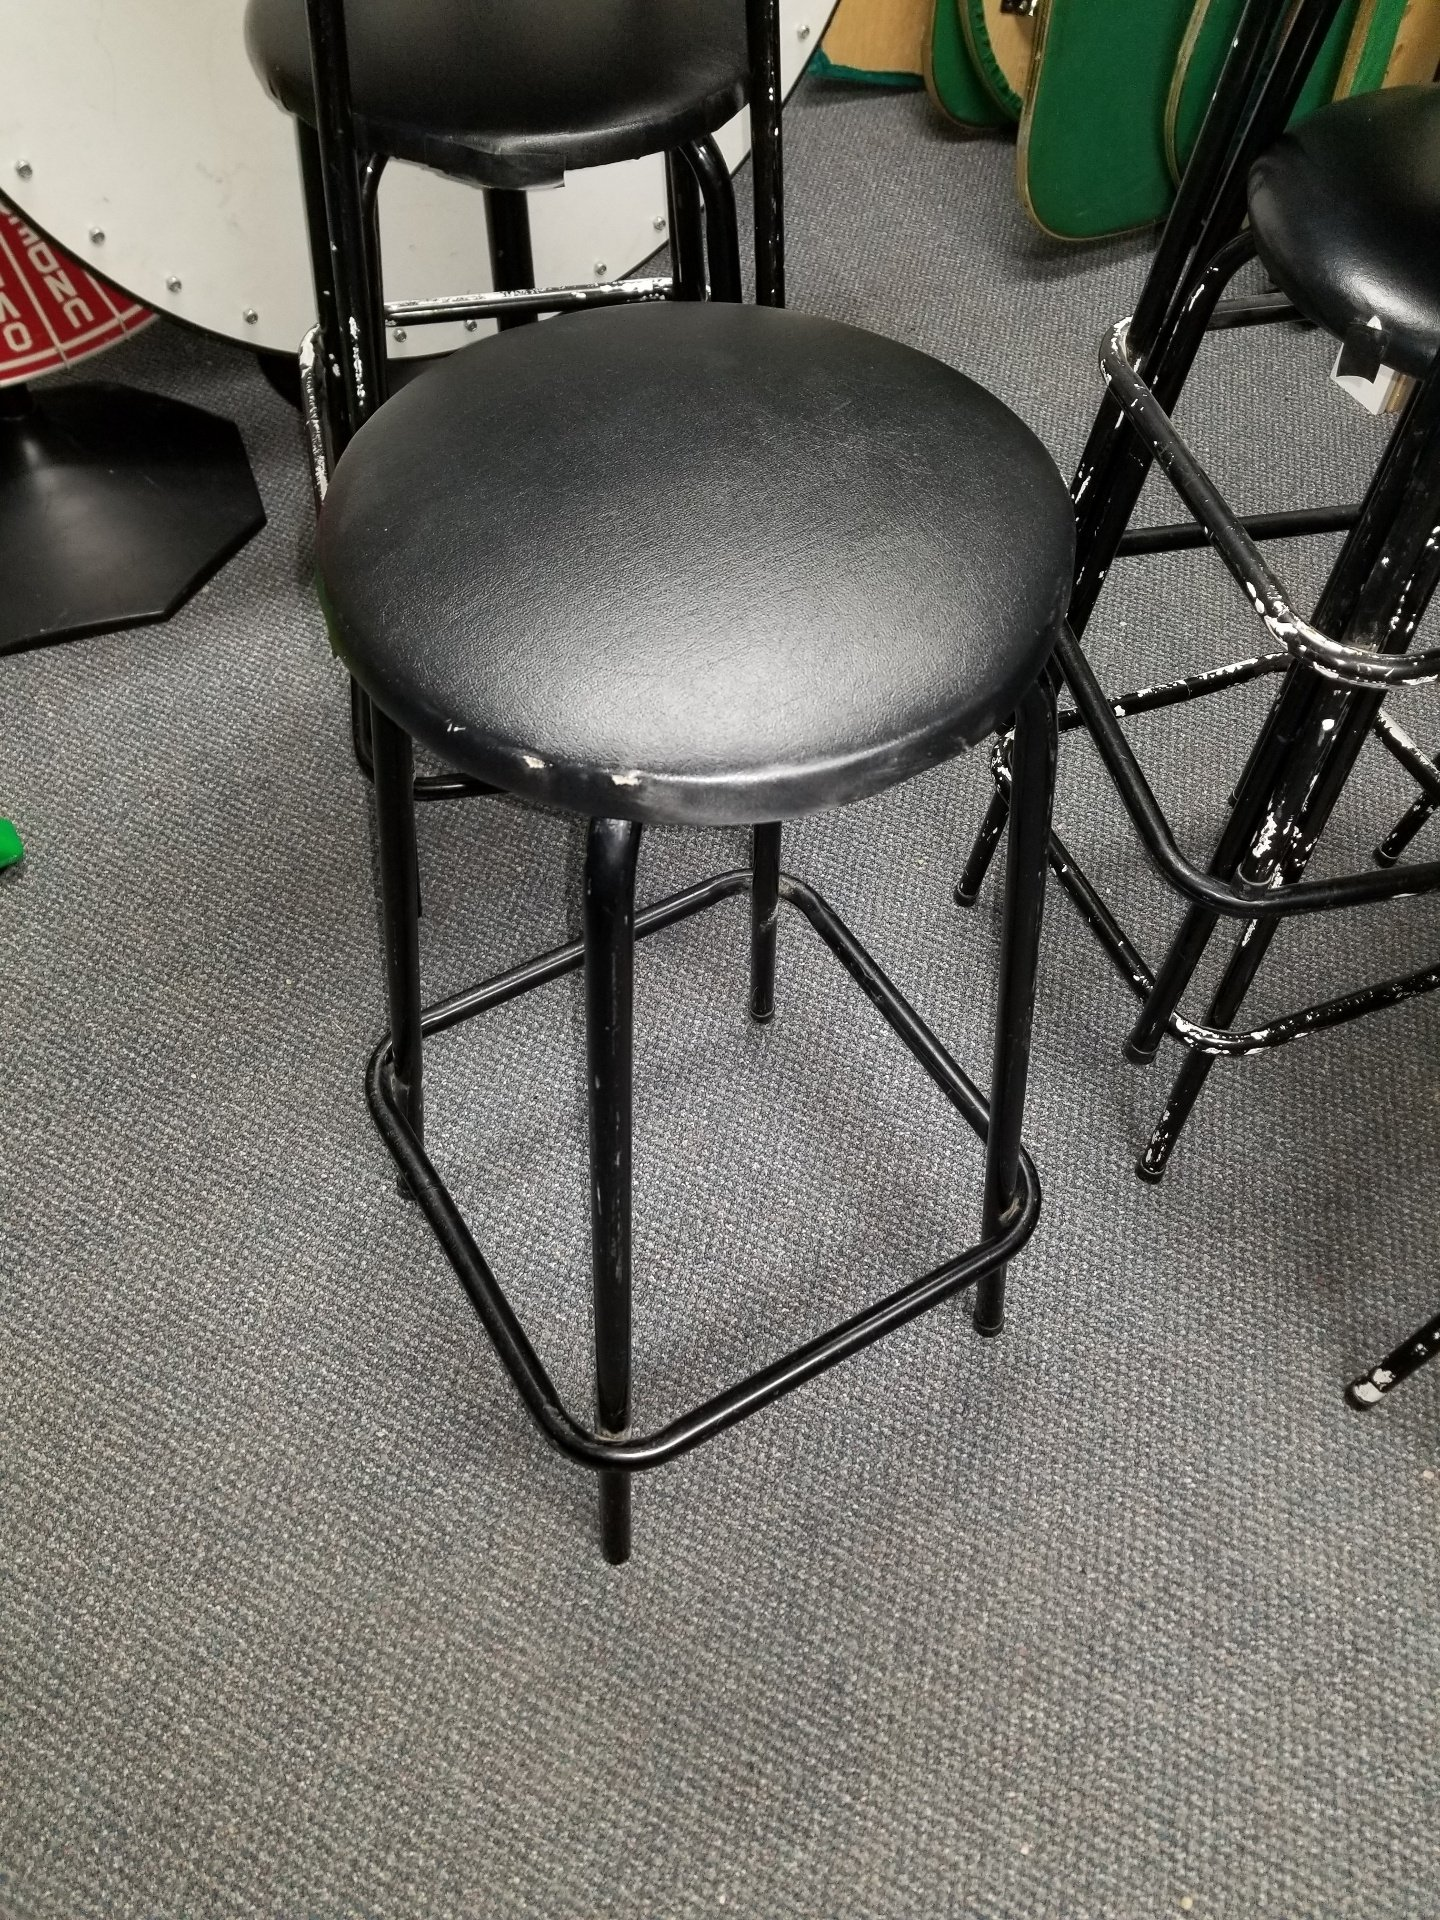 Table Height Stools $3.00 each plus Taxes